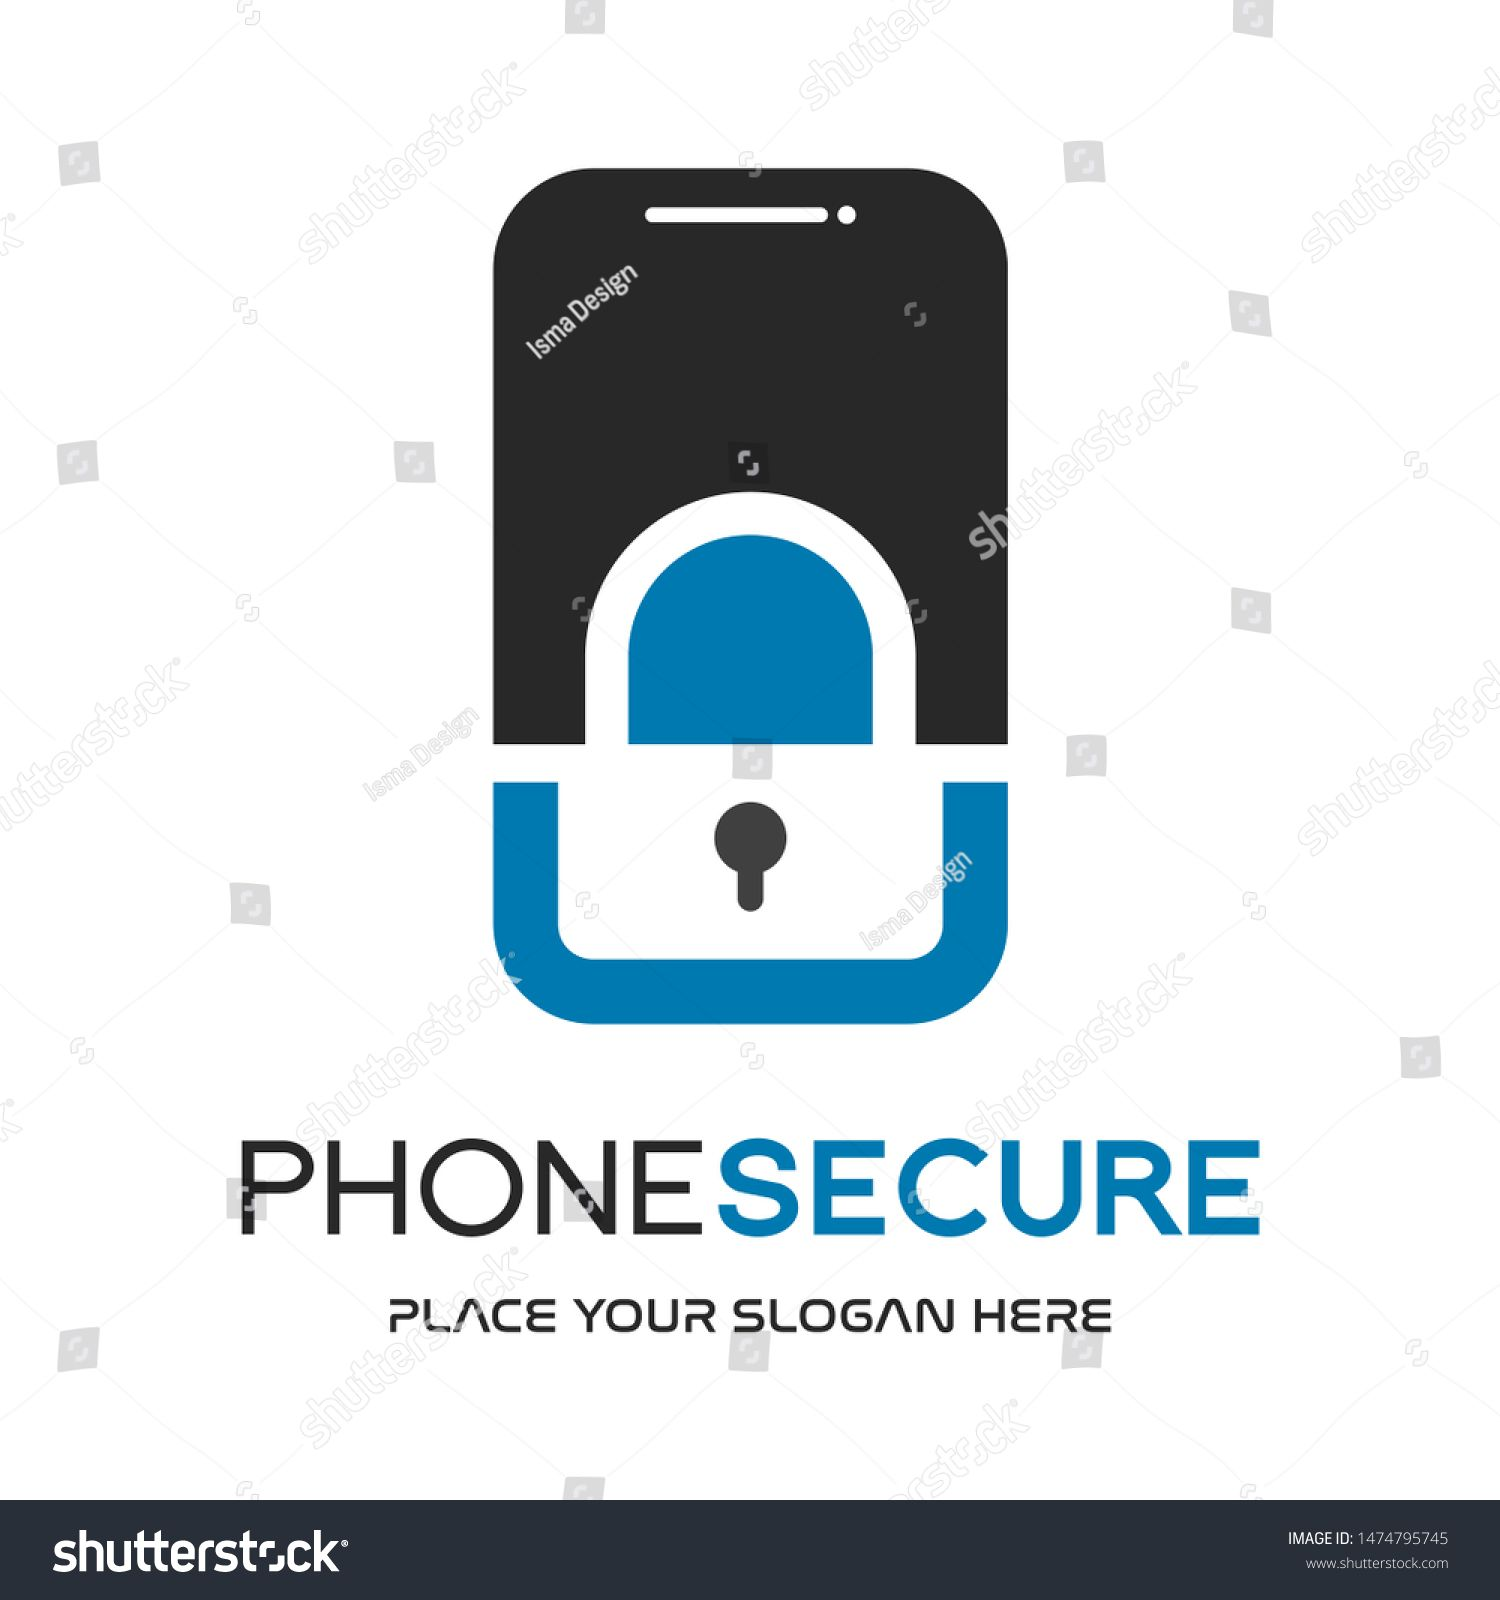 Phone Security Vector Logo Template With Key Symbol Ad Sponsored Vector Security Phone Logo Social Media Design Graphics Abstract Lines Phone Logo